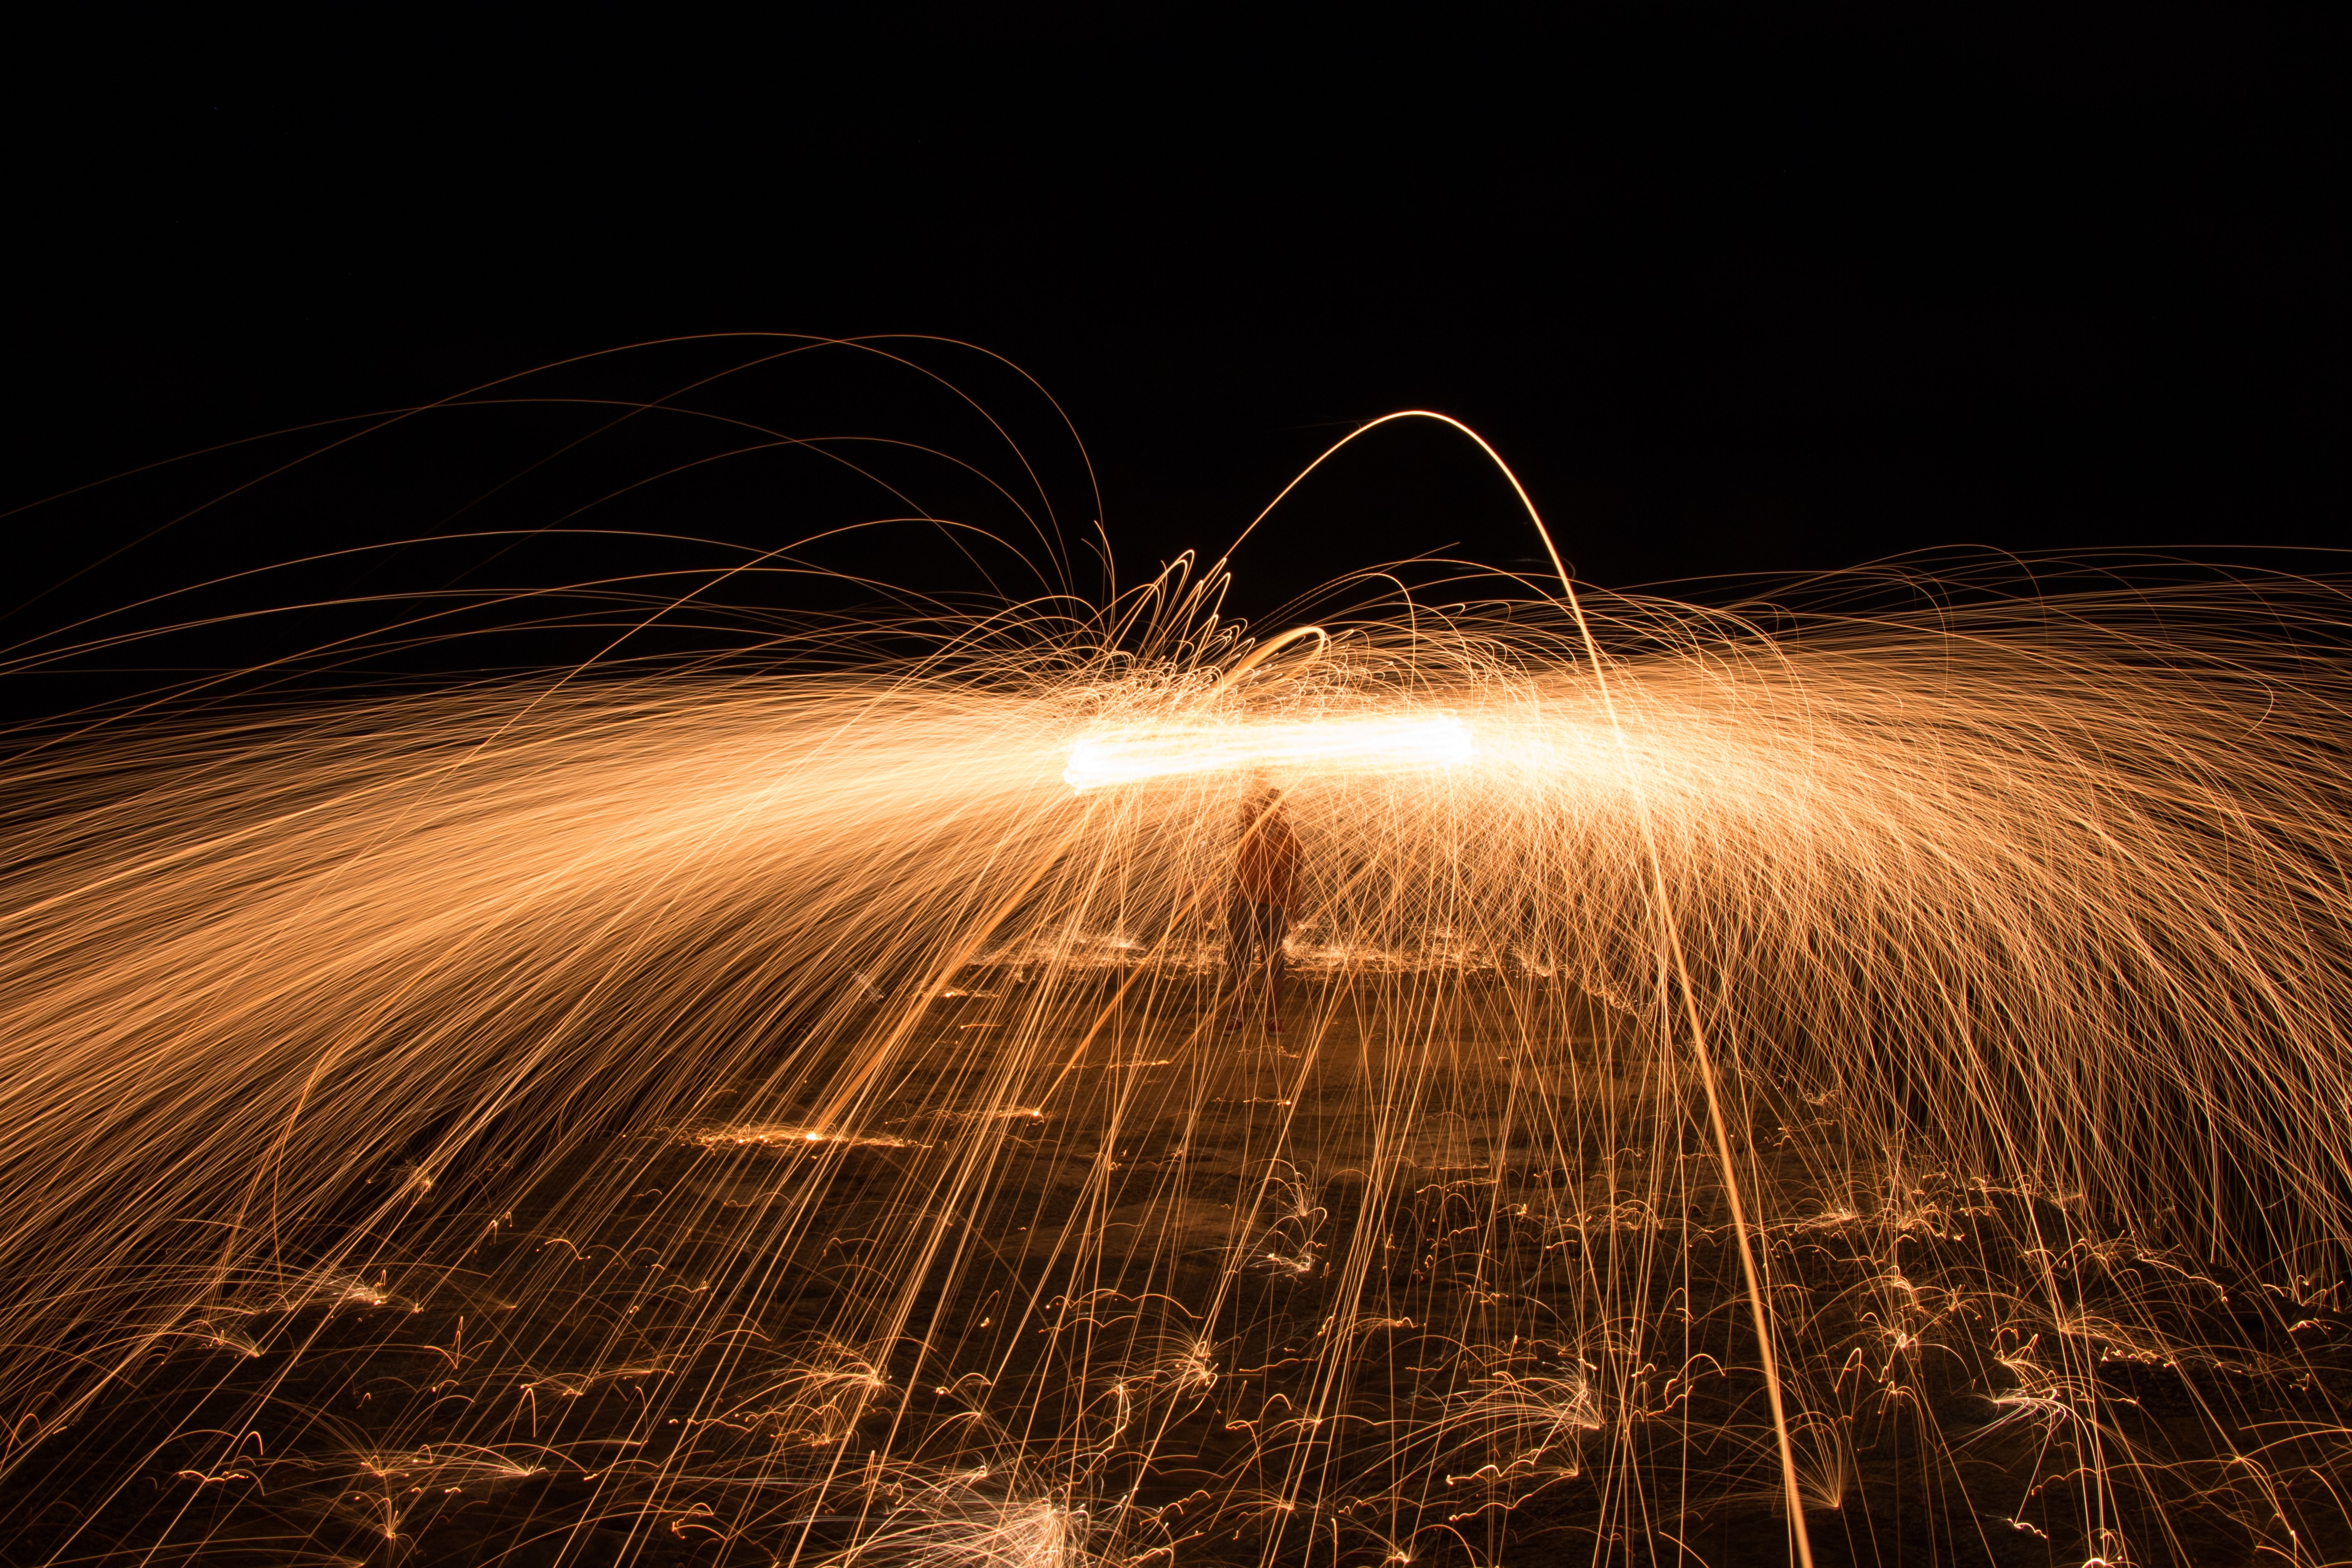 time-lapse photography of person using lit steel wool